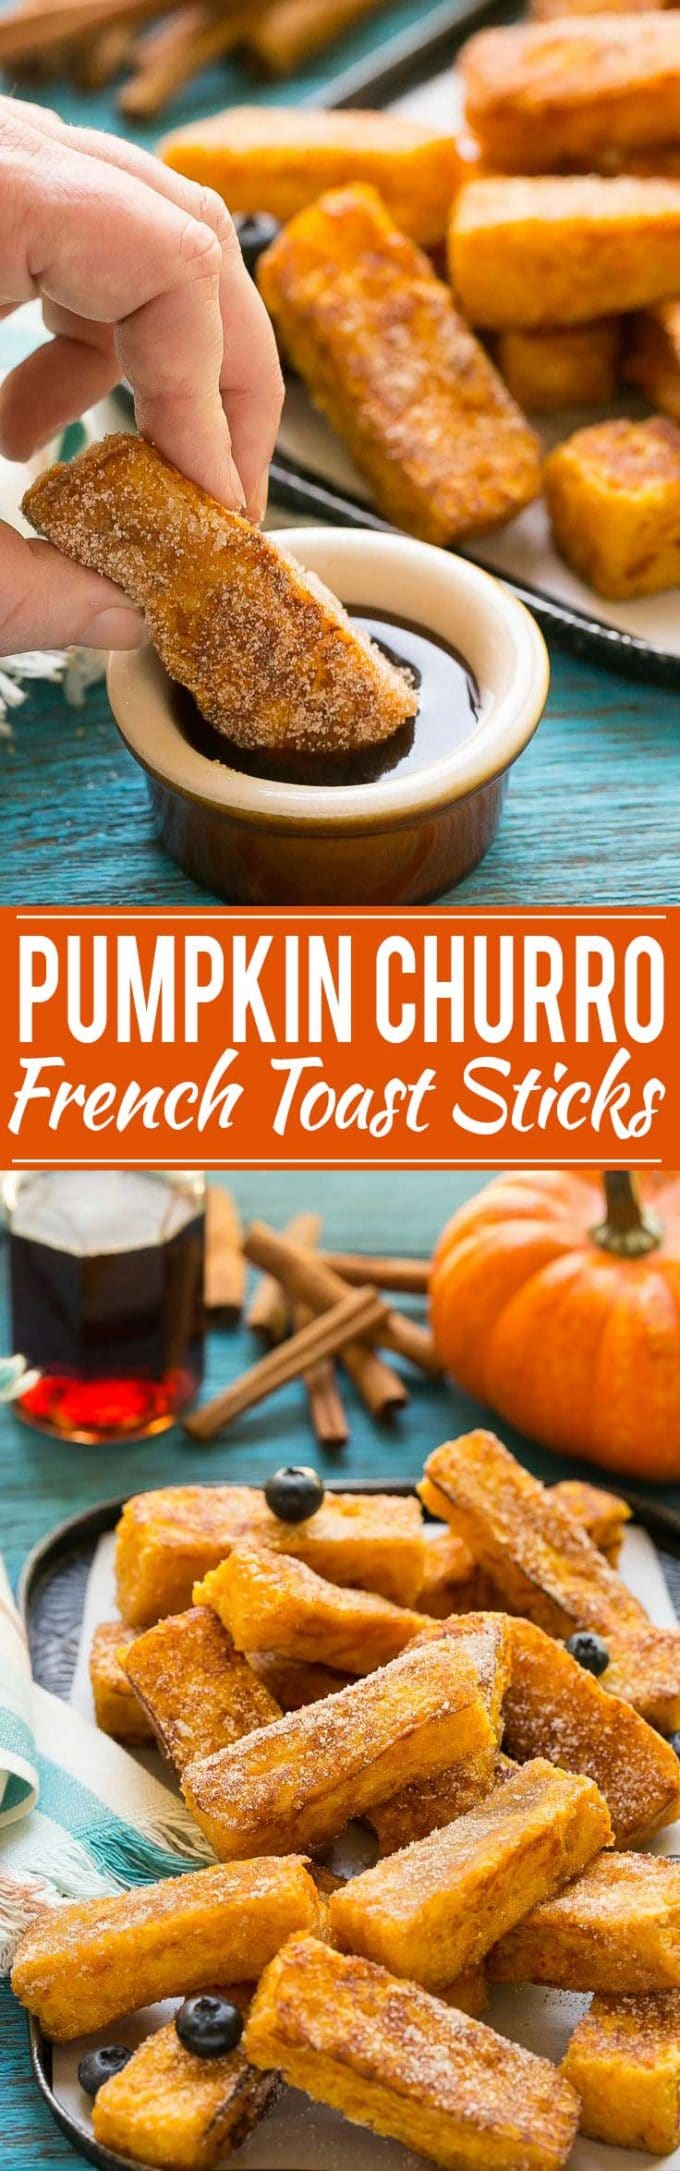 Pumpkin churro french toast sticks dinner at the zoo pumpkin churro french toast sticks recipe pumpkin churro french toast sticks french toast sticks solutioingenieria Choice Image